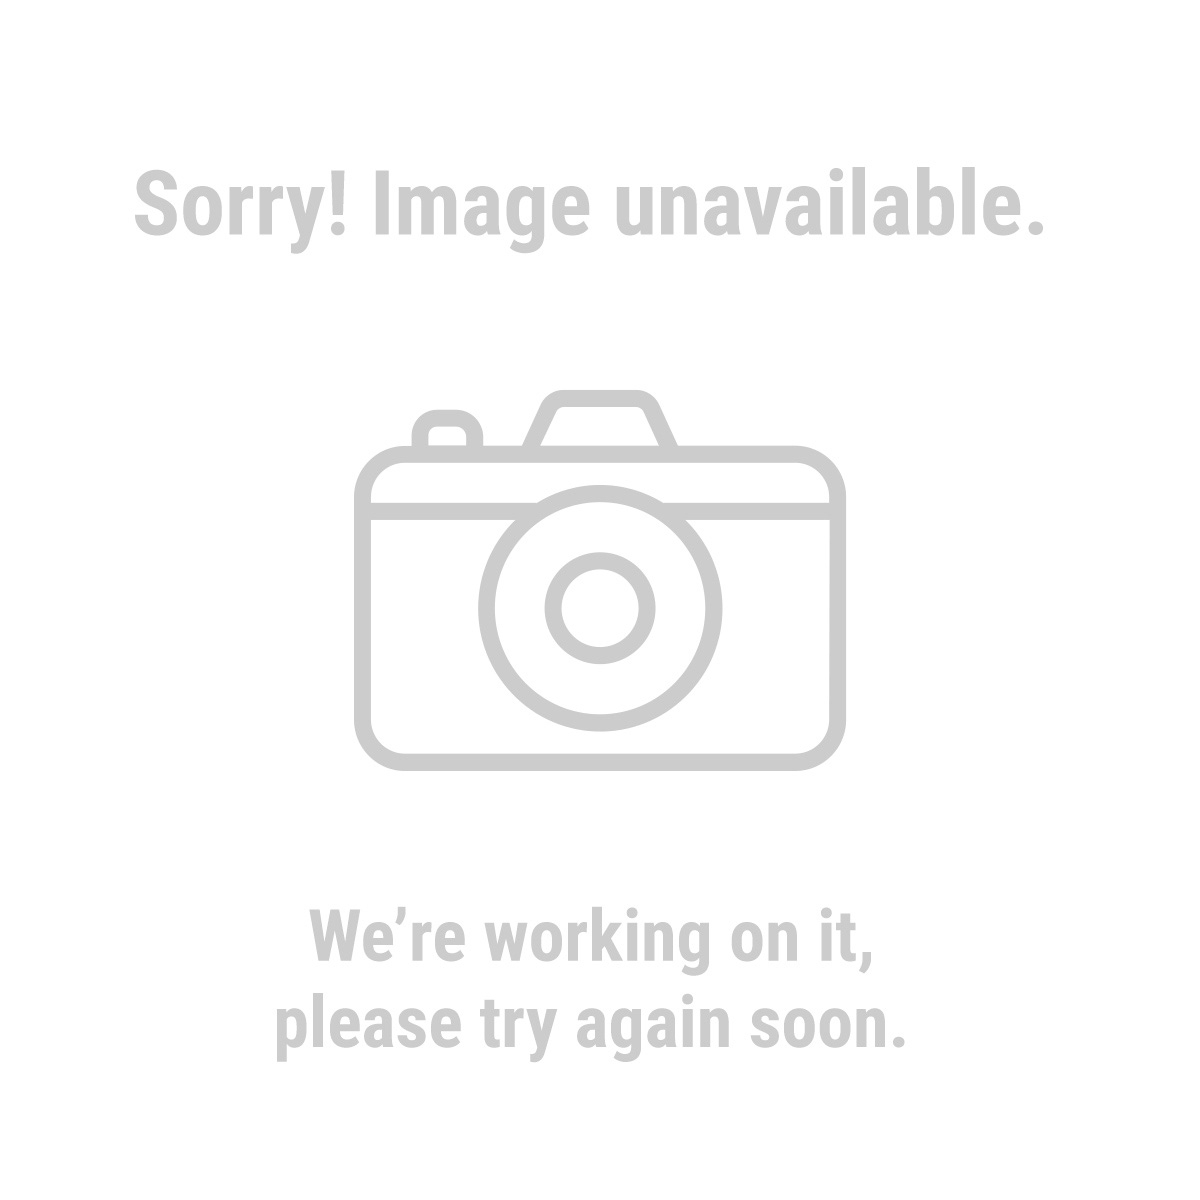 Haul-Master 95182 2 Piece Universal Chrome Anchor Points